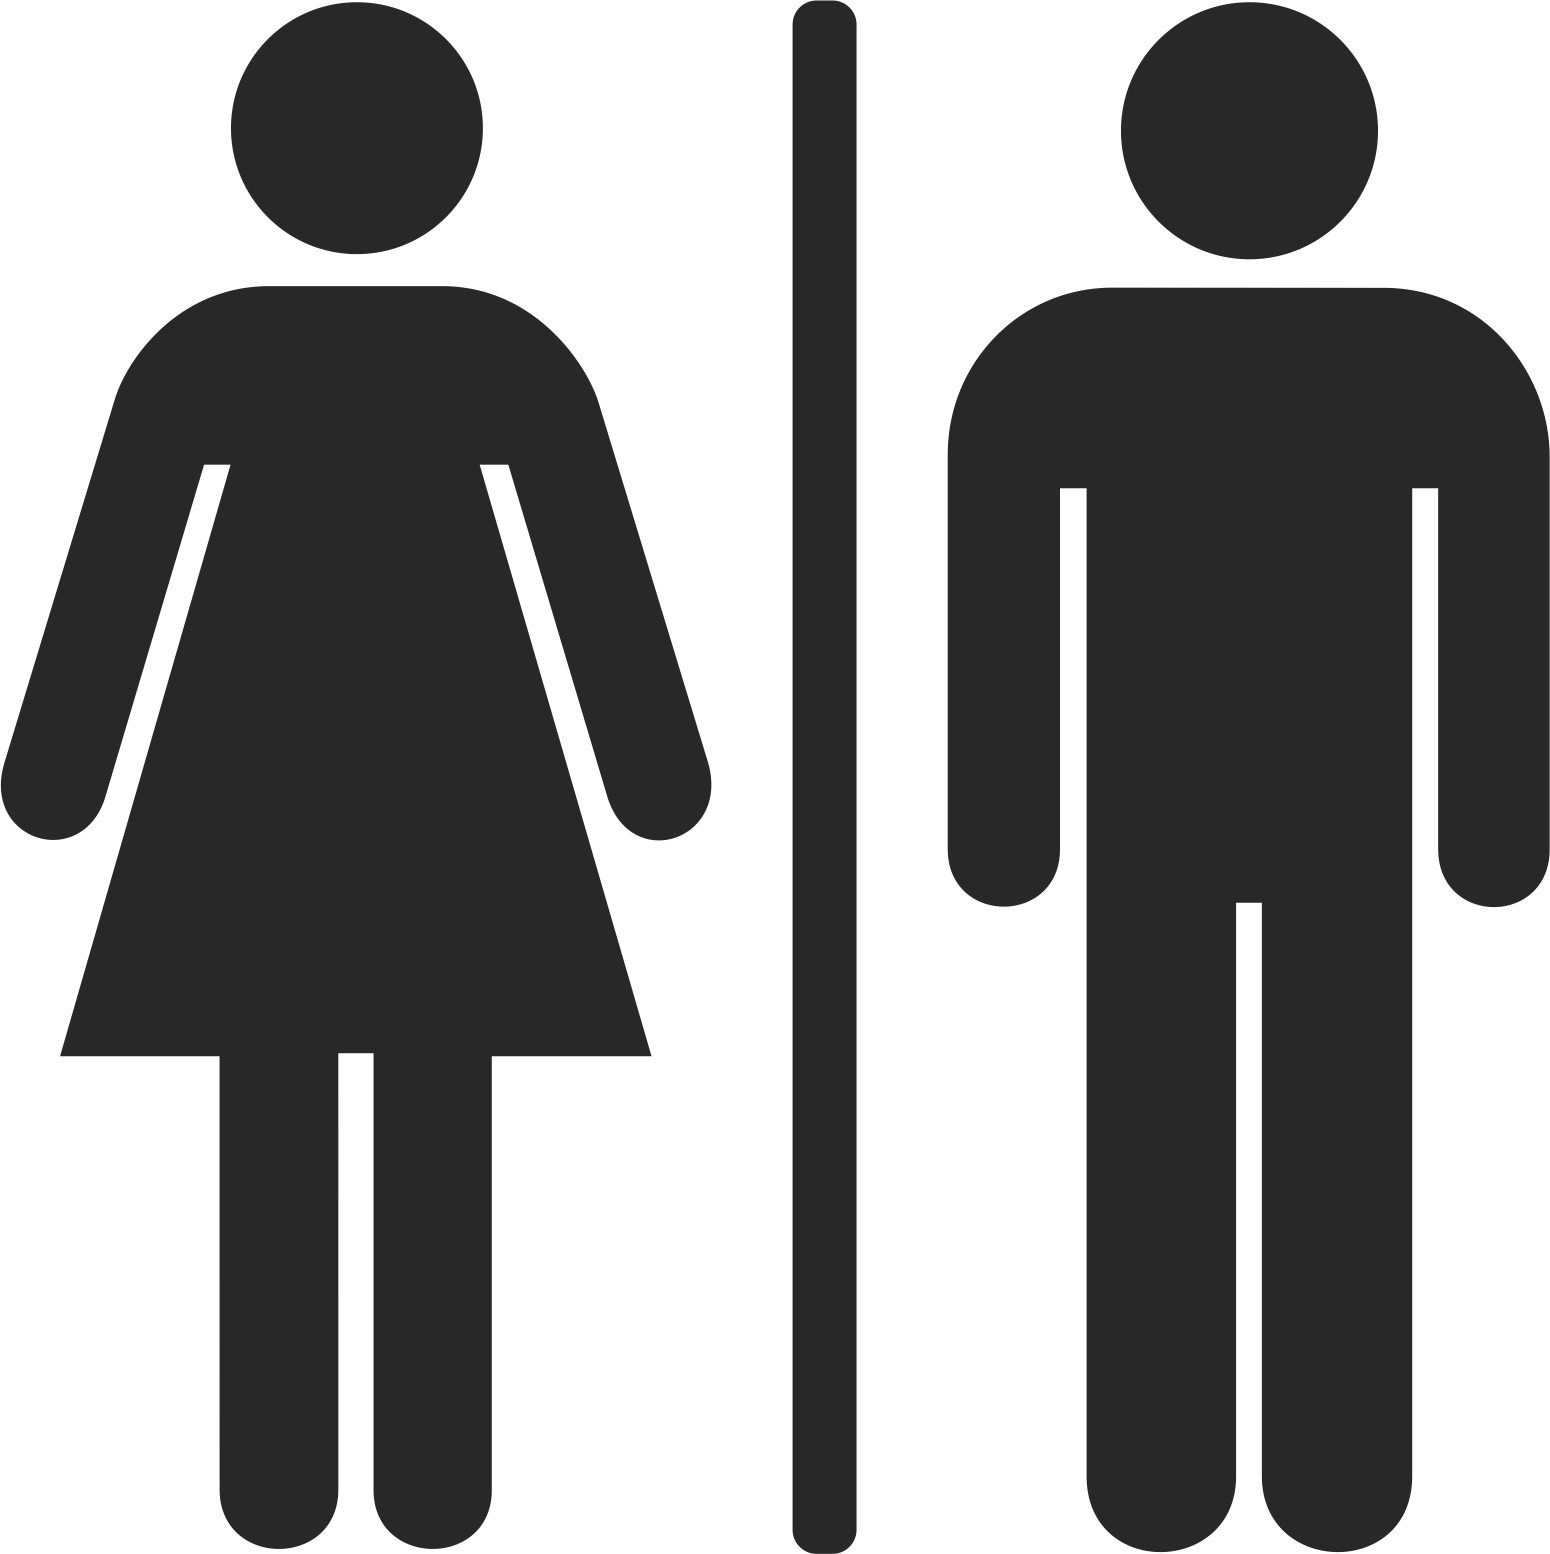 toilet man and woman sign free vector cdr download - 3axis.co  3axis.co